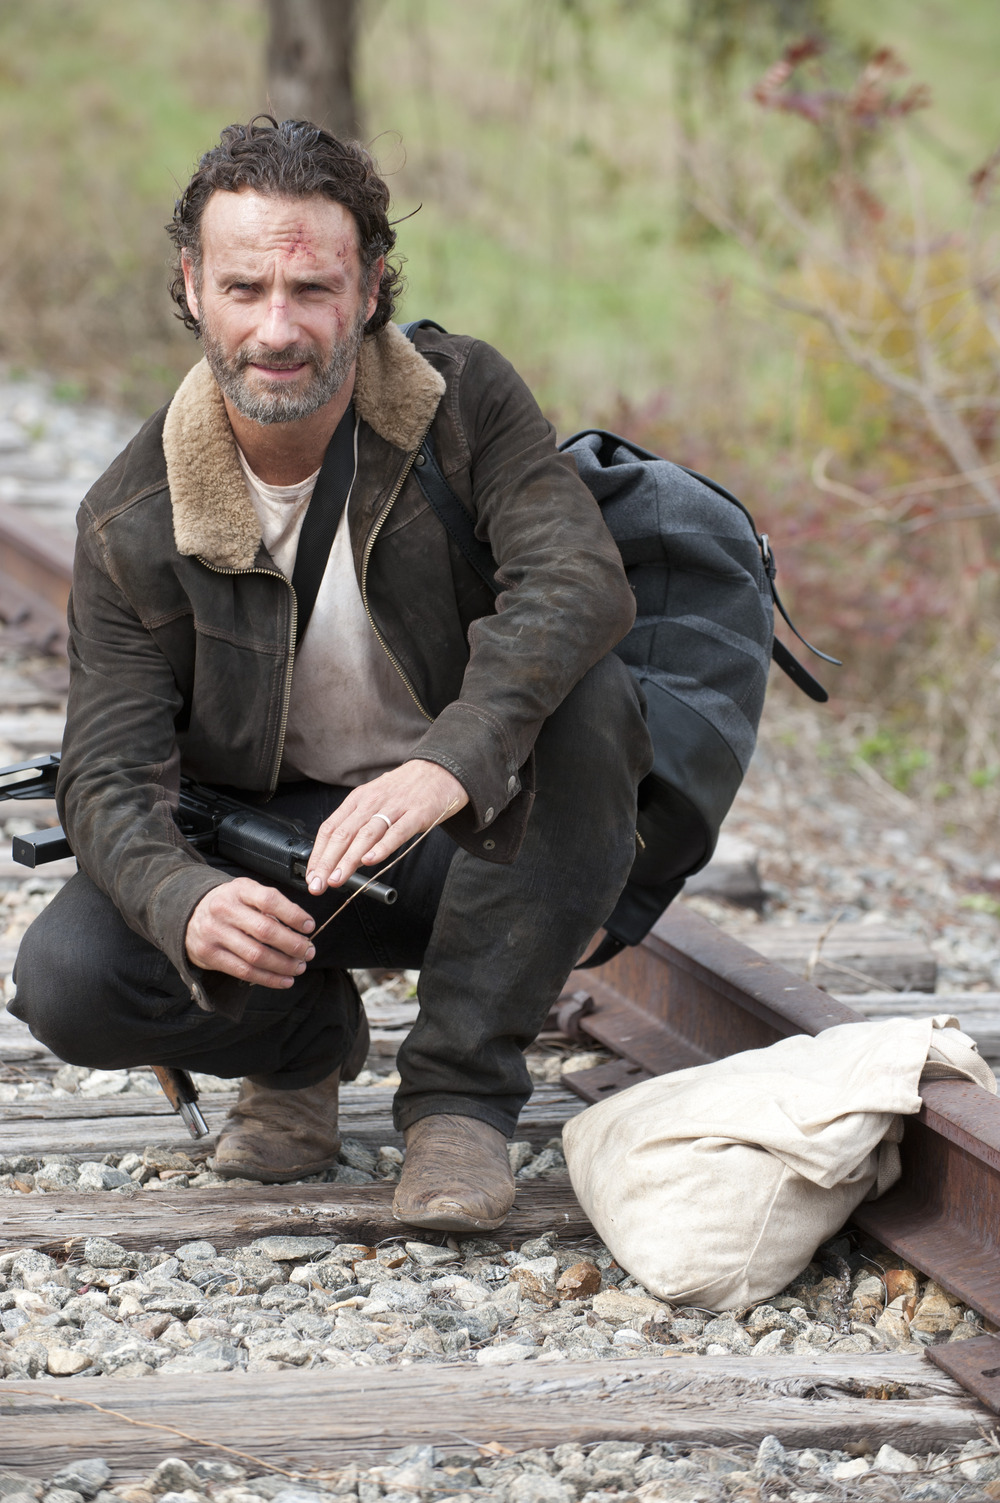 The Walking Dead Season 5 Spoilers: New One-Legged Character Named Burton Coming